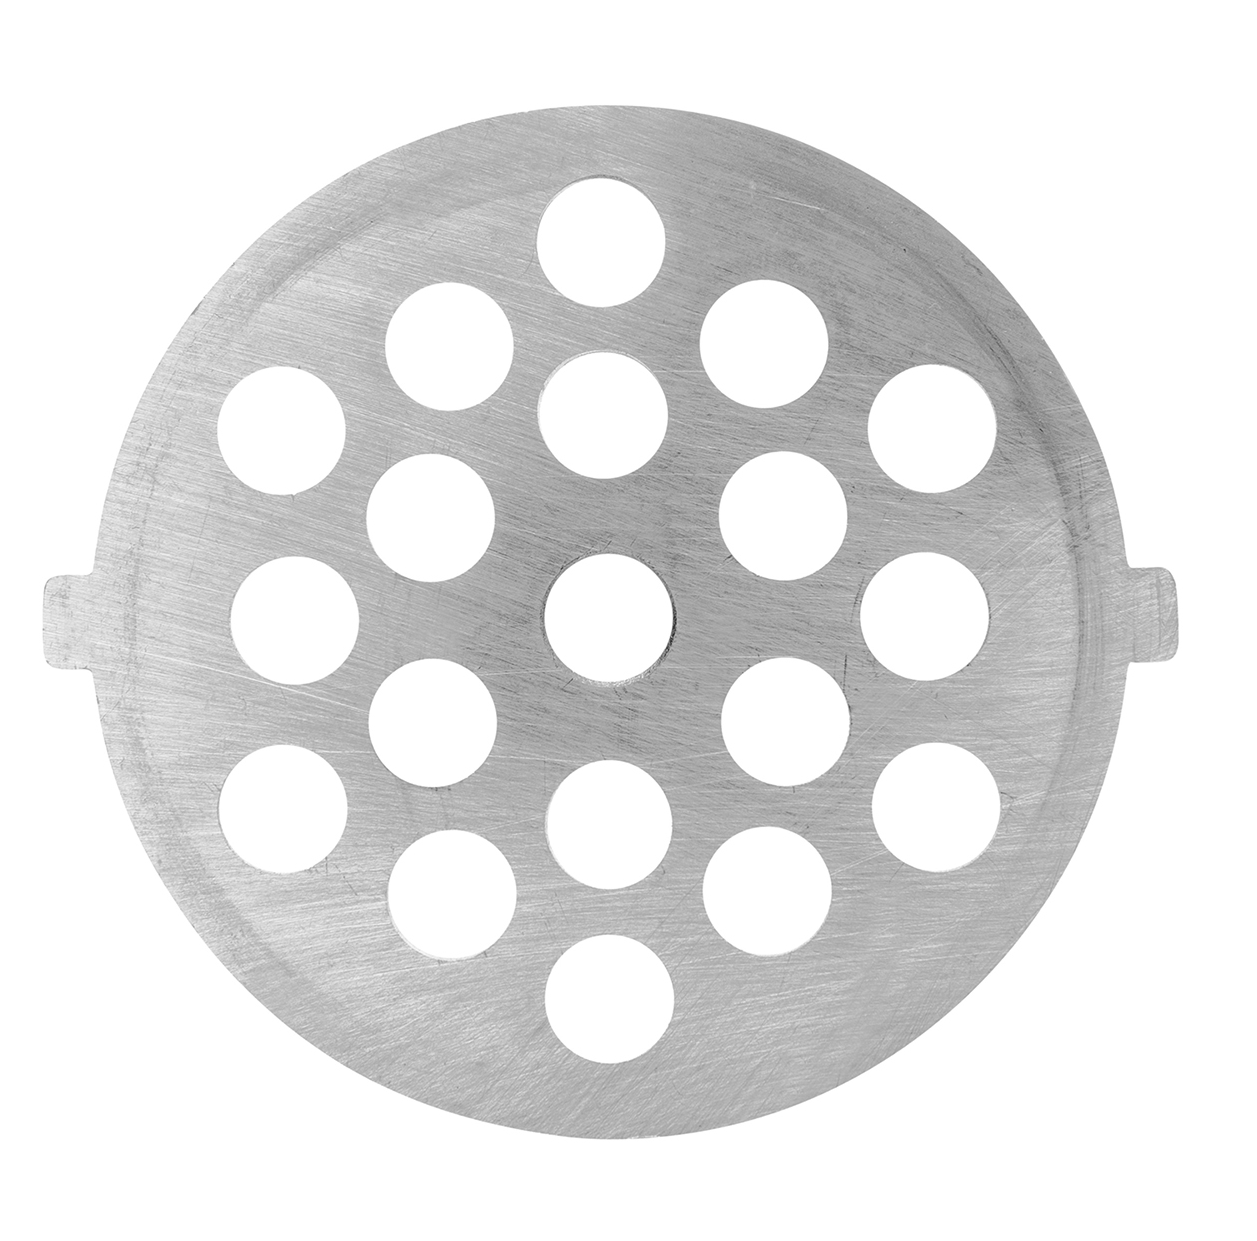 8mm Stainless Steel Cutting Plate for the Luvele Meat grinder